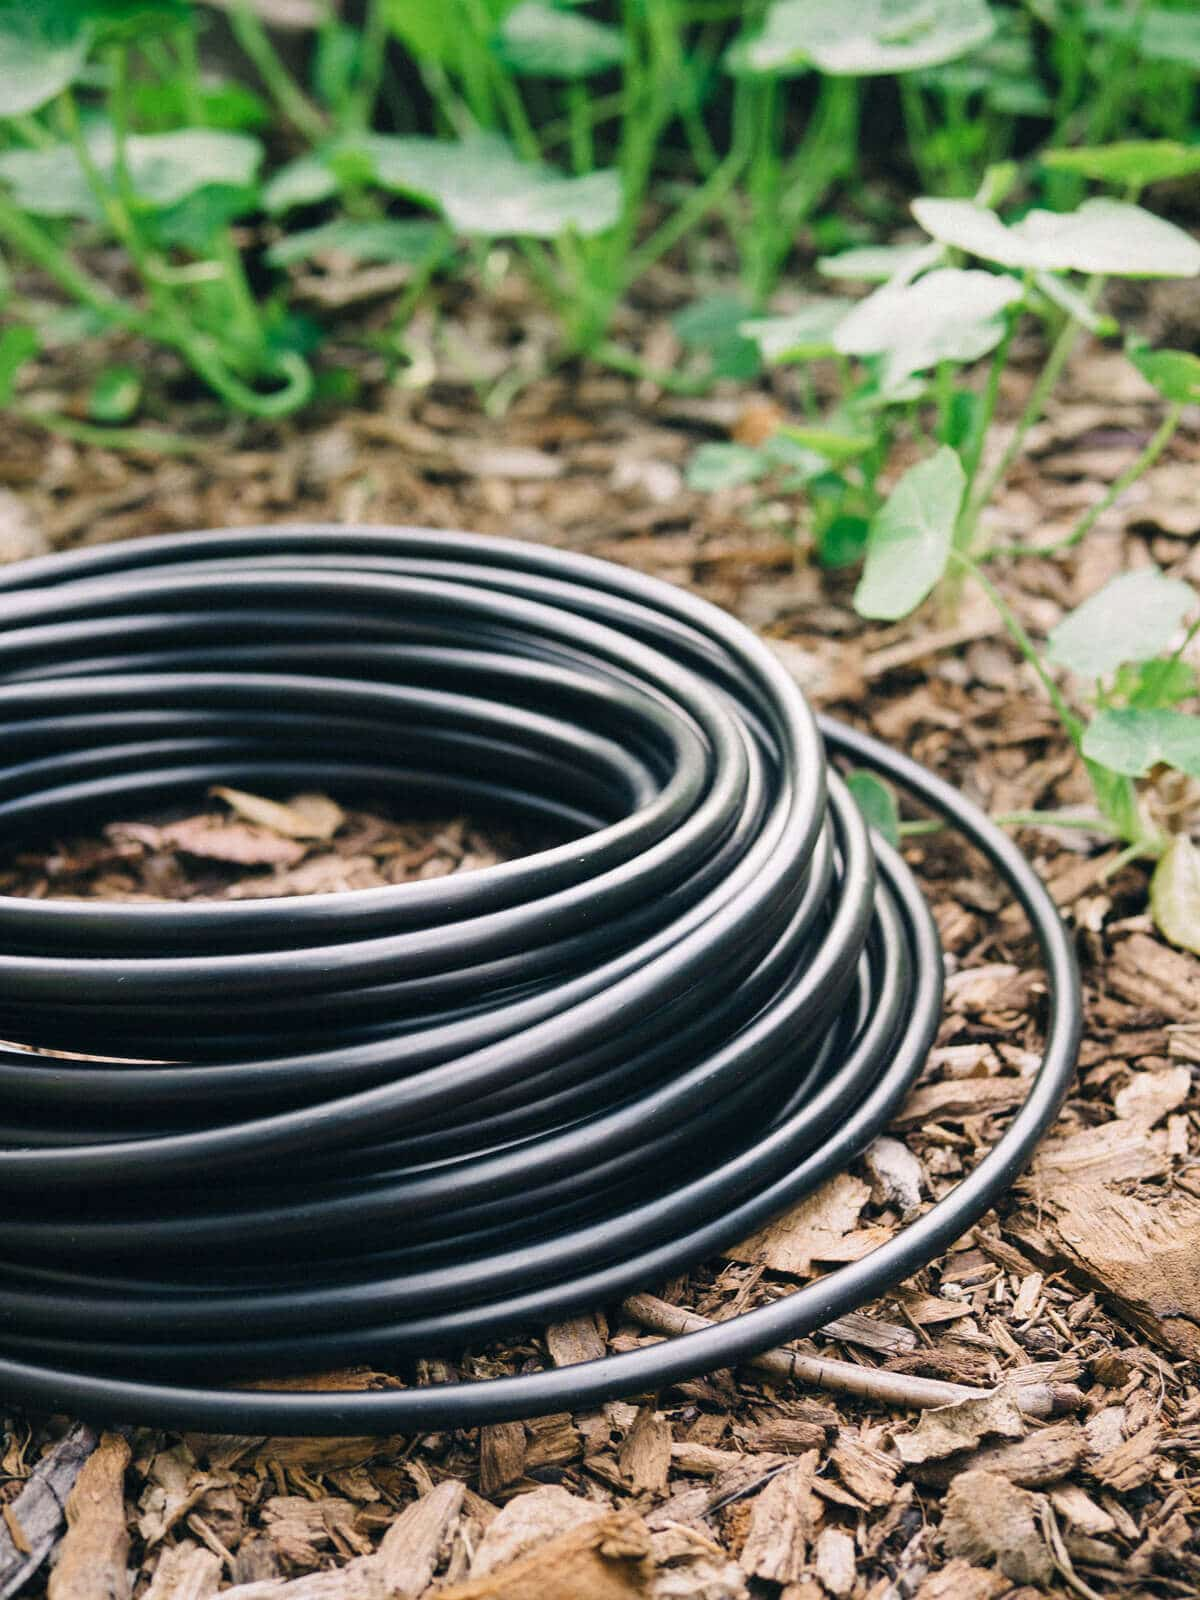 Drip Irrigation: Watering Your Garden While Saving Your Resources